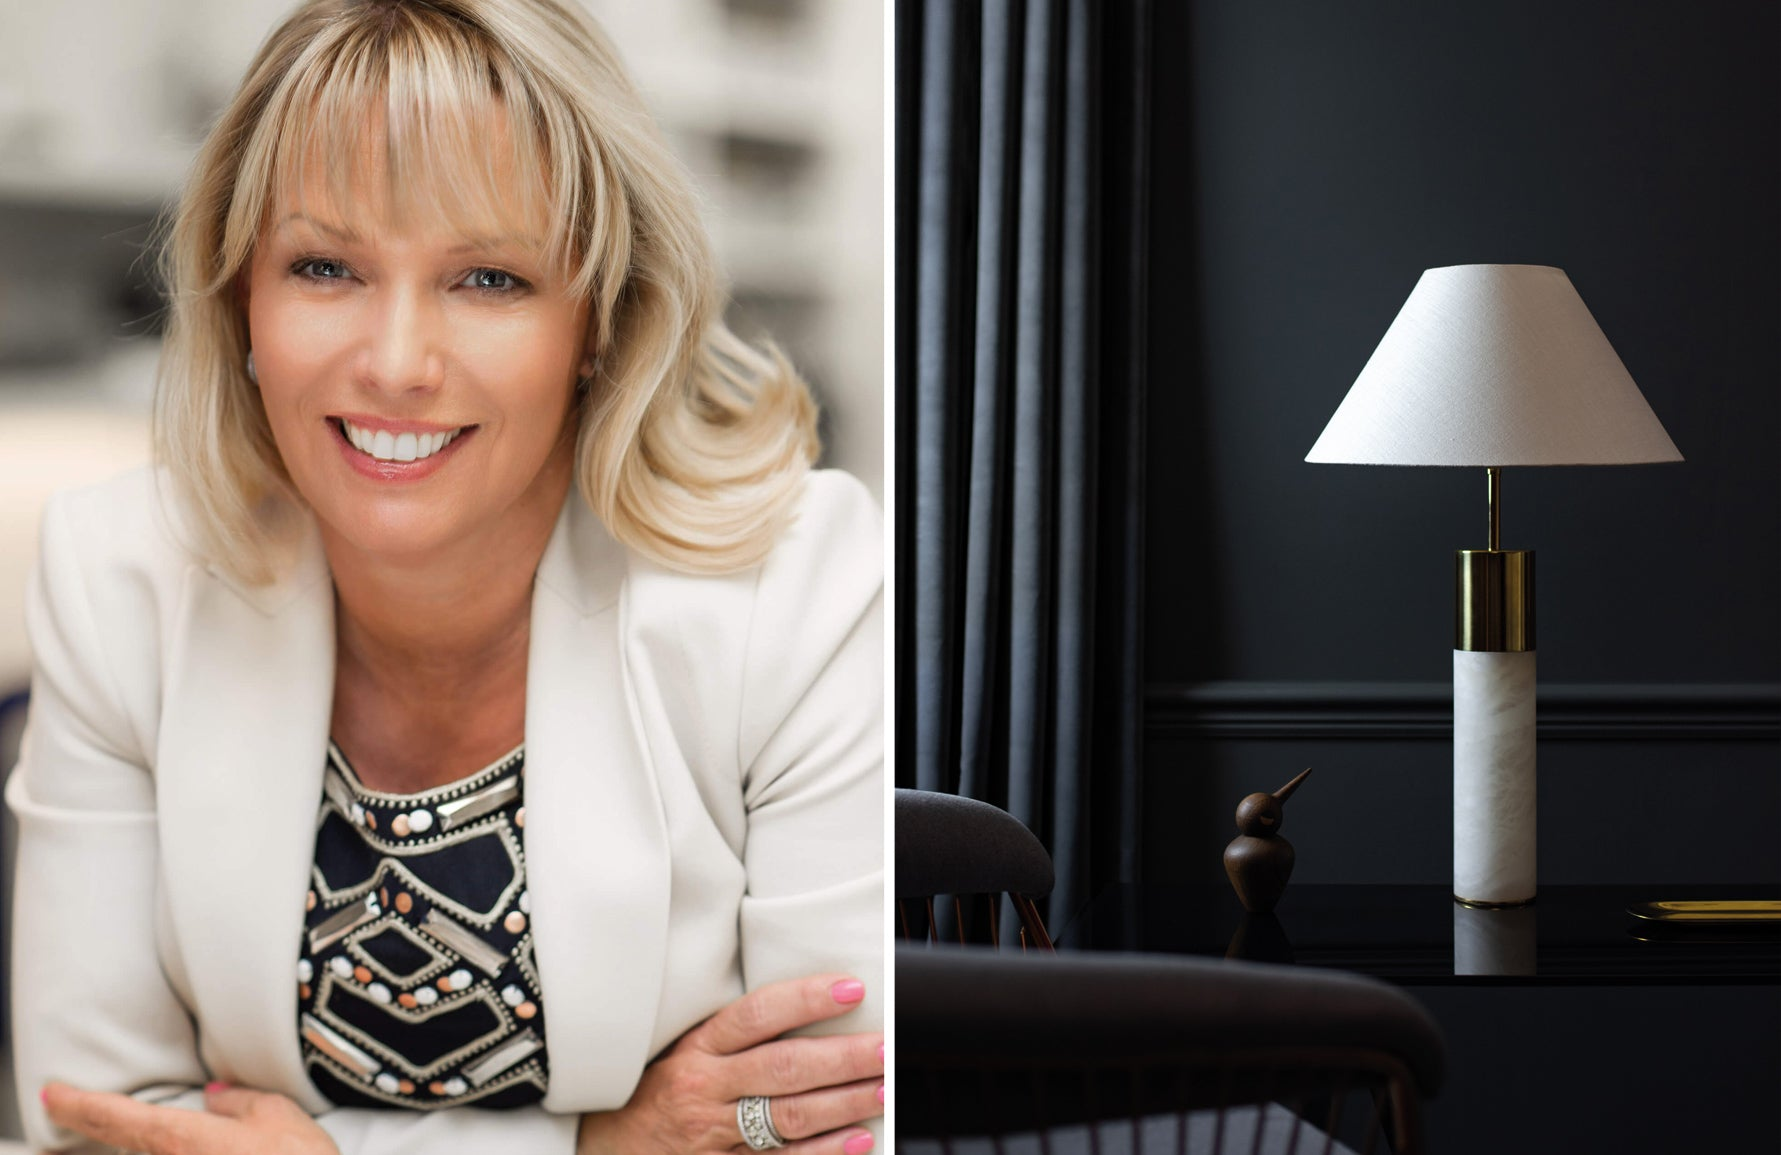 Heathfield Lighting | Think Big, Shop Small | LuxDeco.com | Keep Creativity Going | Taylor Howes | Shop luxury furniture and accessories on LuxDeco.com